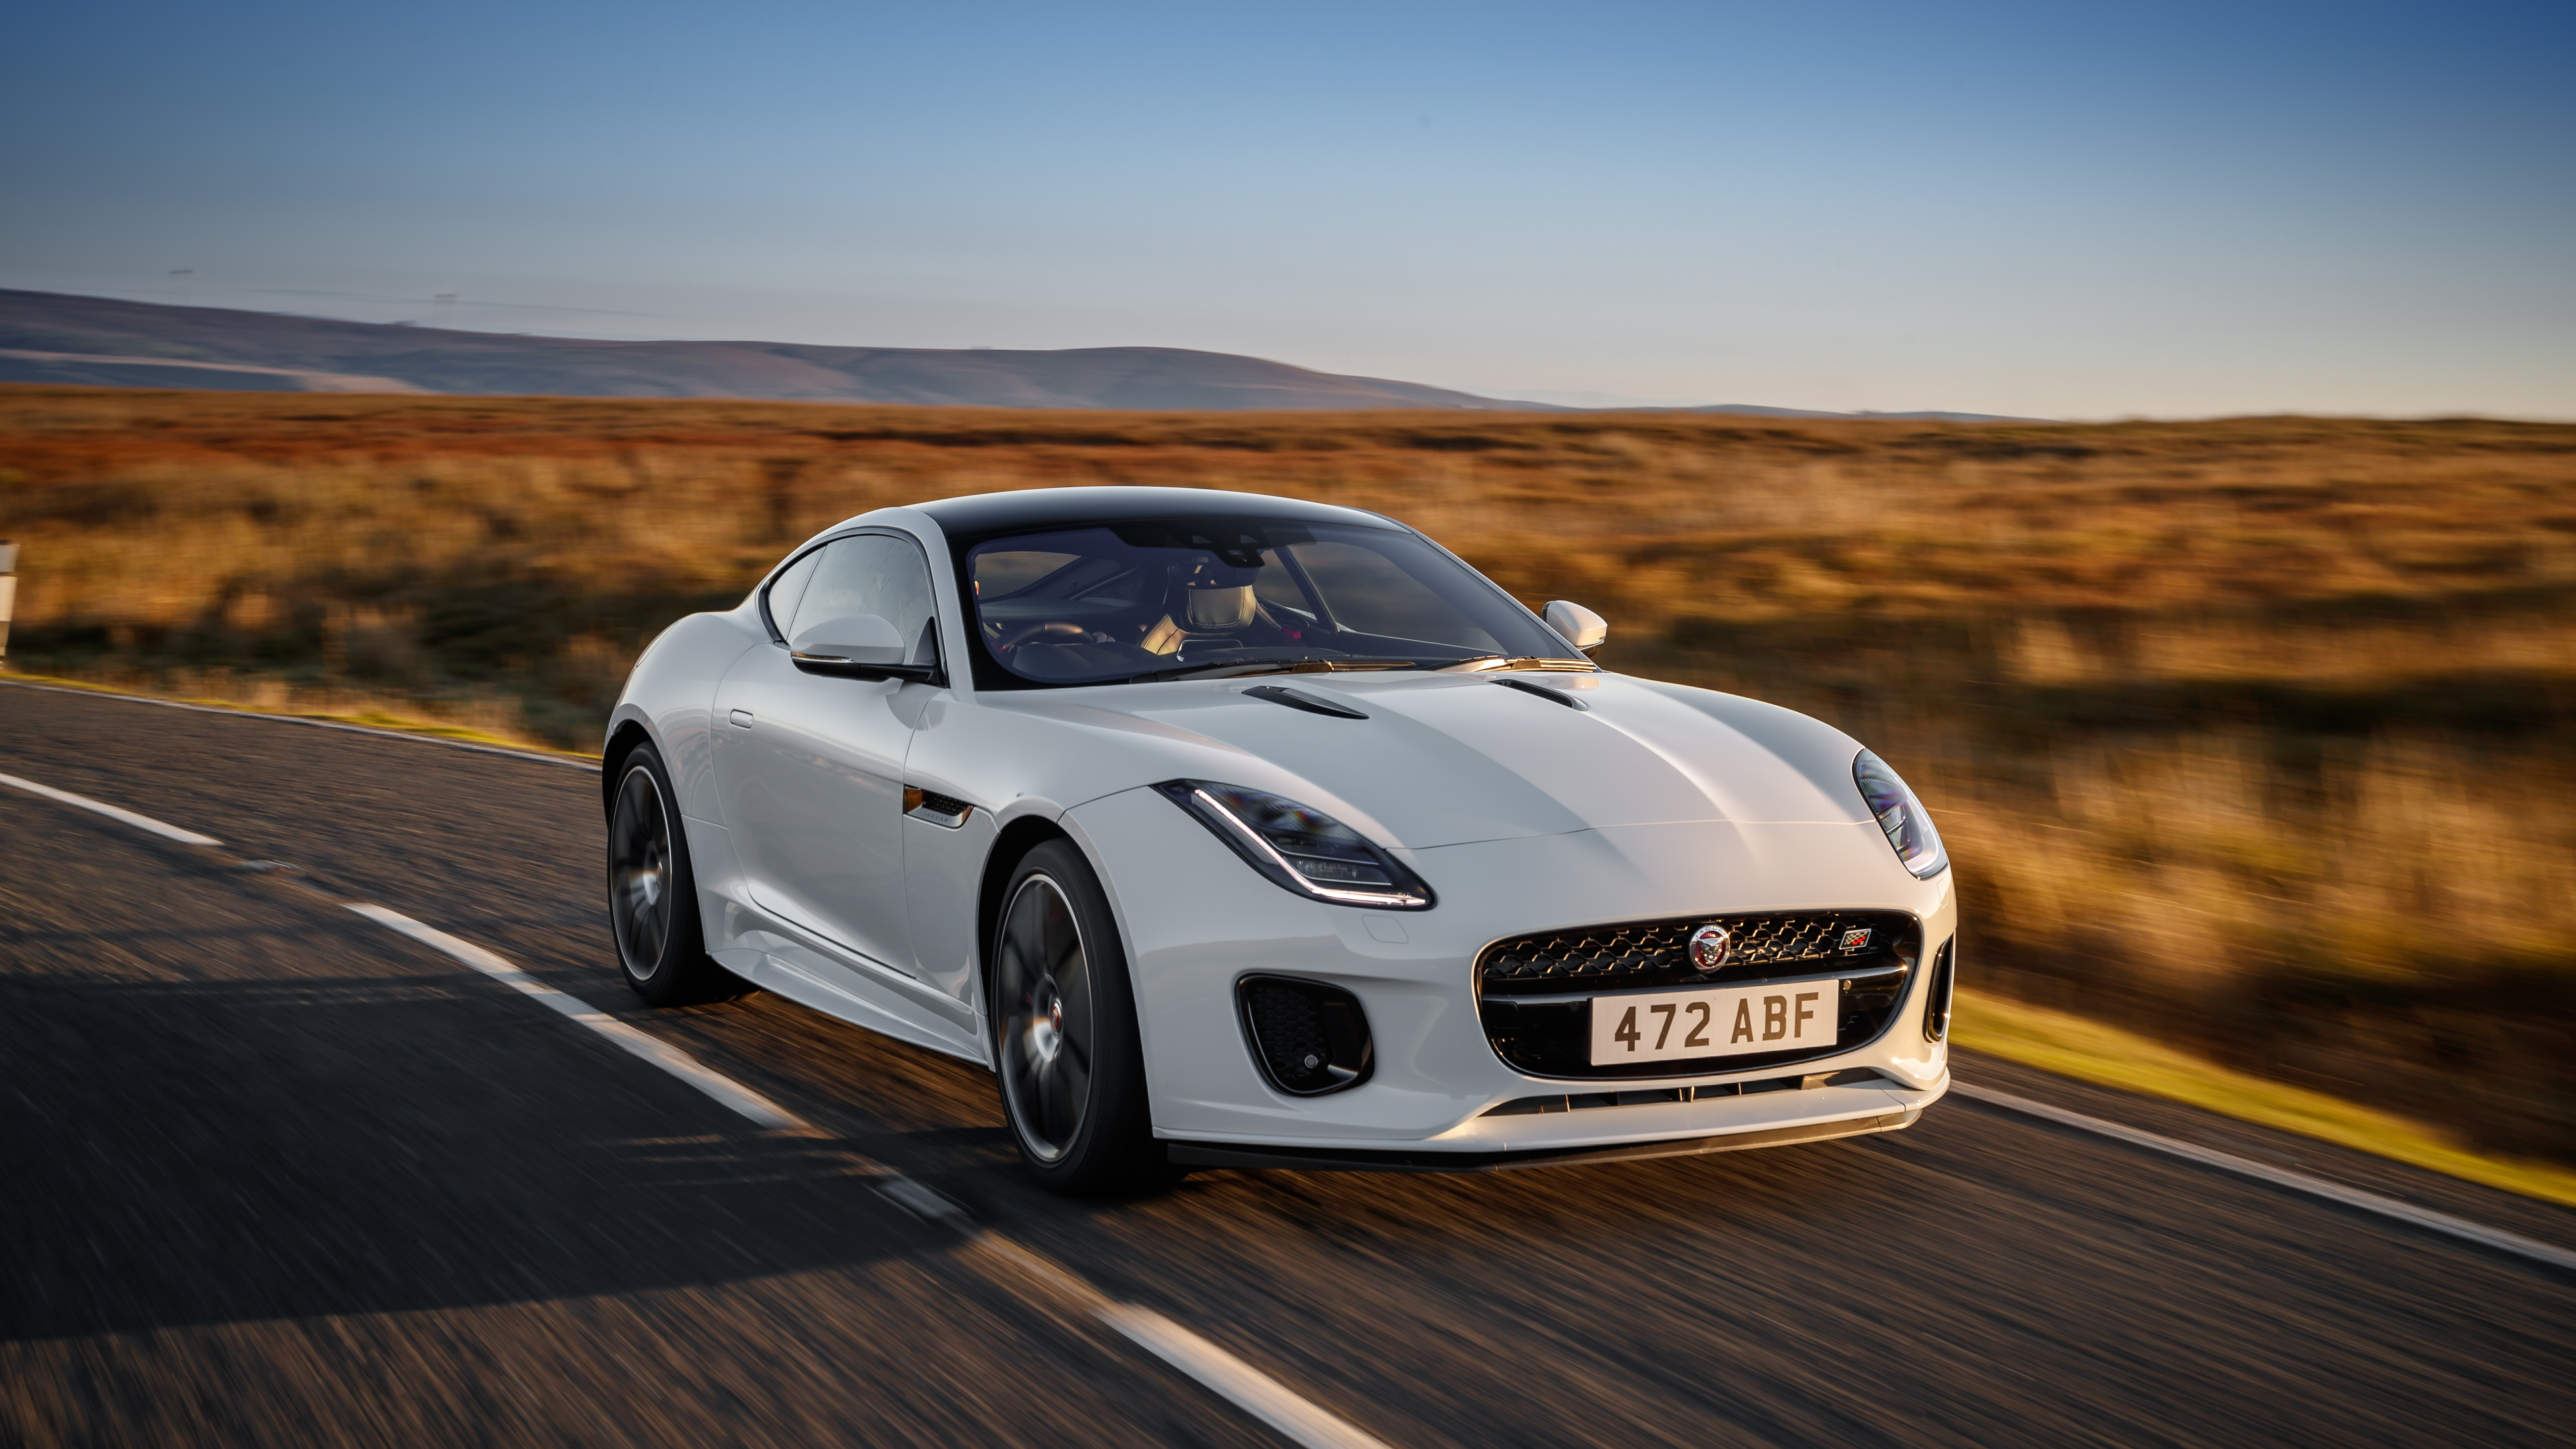 2019 Jaguar F Type Checkered Flag Limited Edition Coupe Top Speed